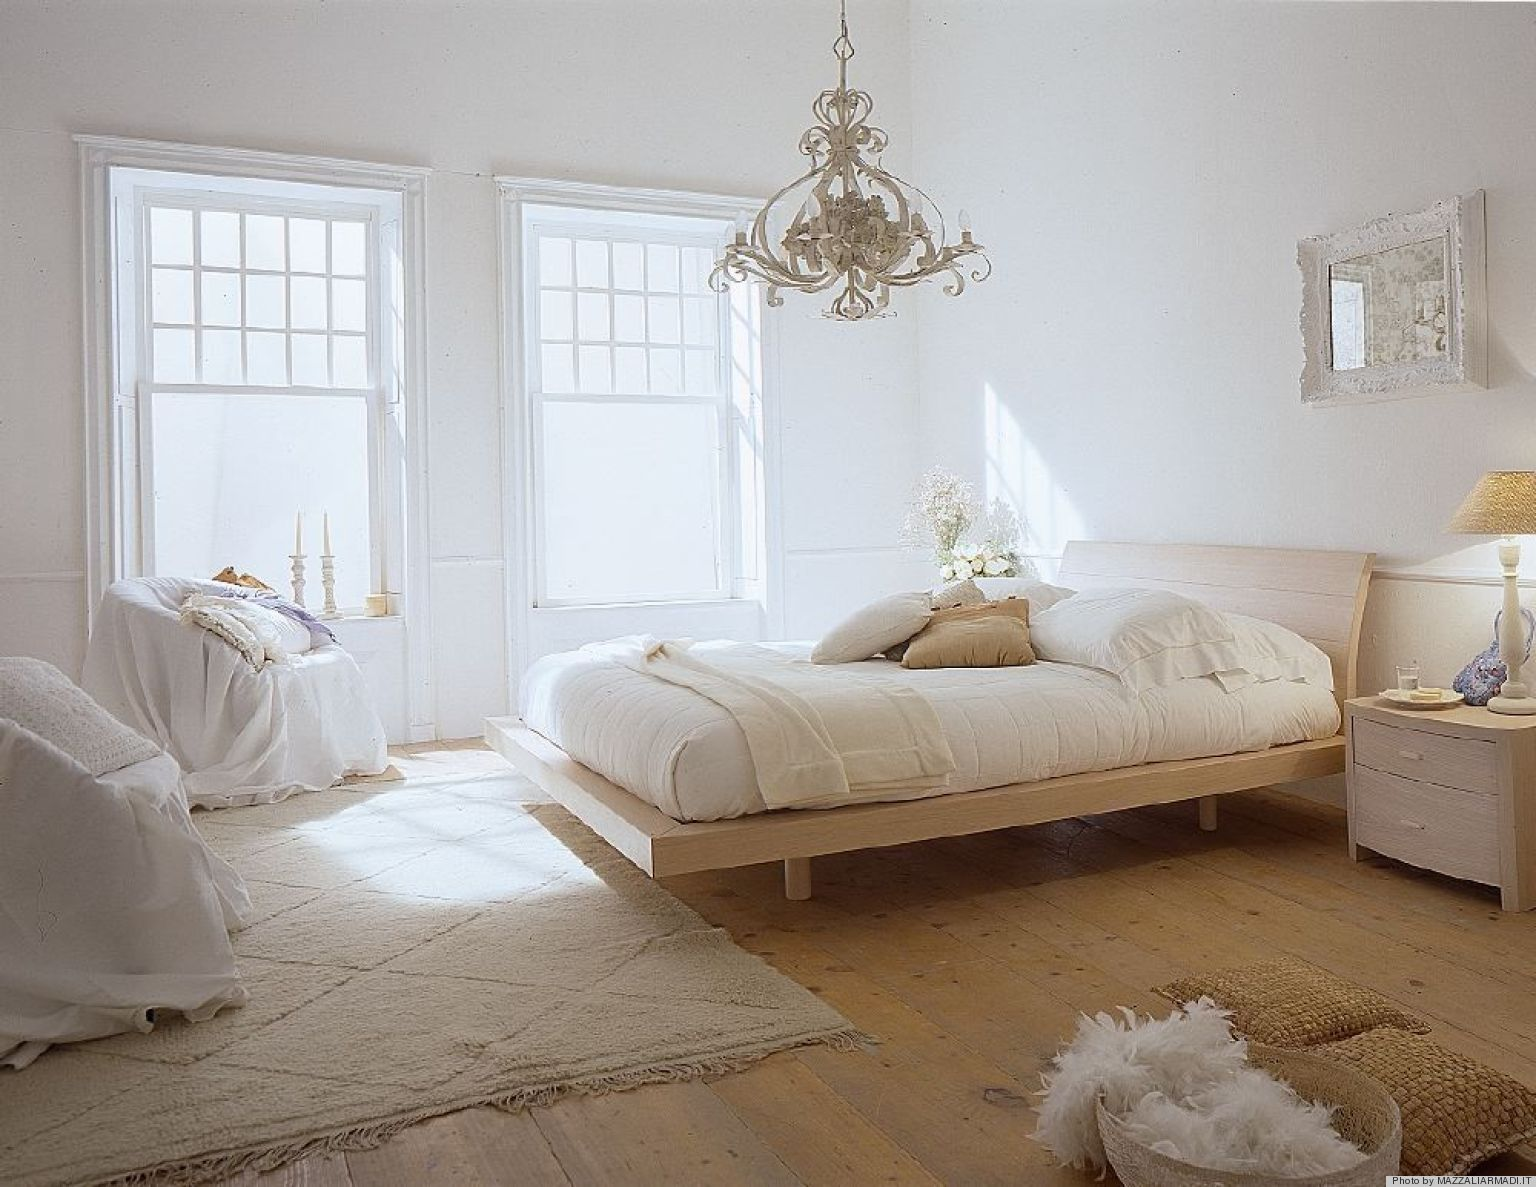 Ways To Turn Your Bedroom Into A Boudoir HuffPost - Six tips for a sexy bedroom